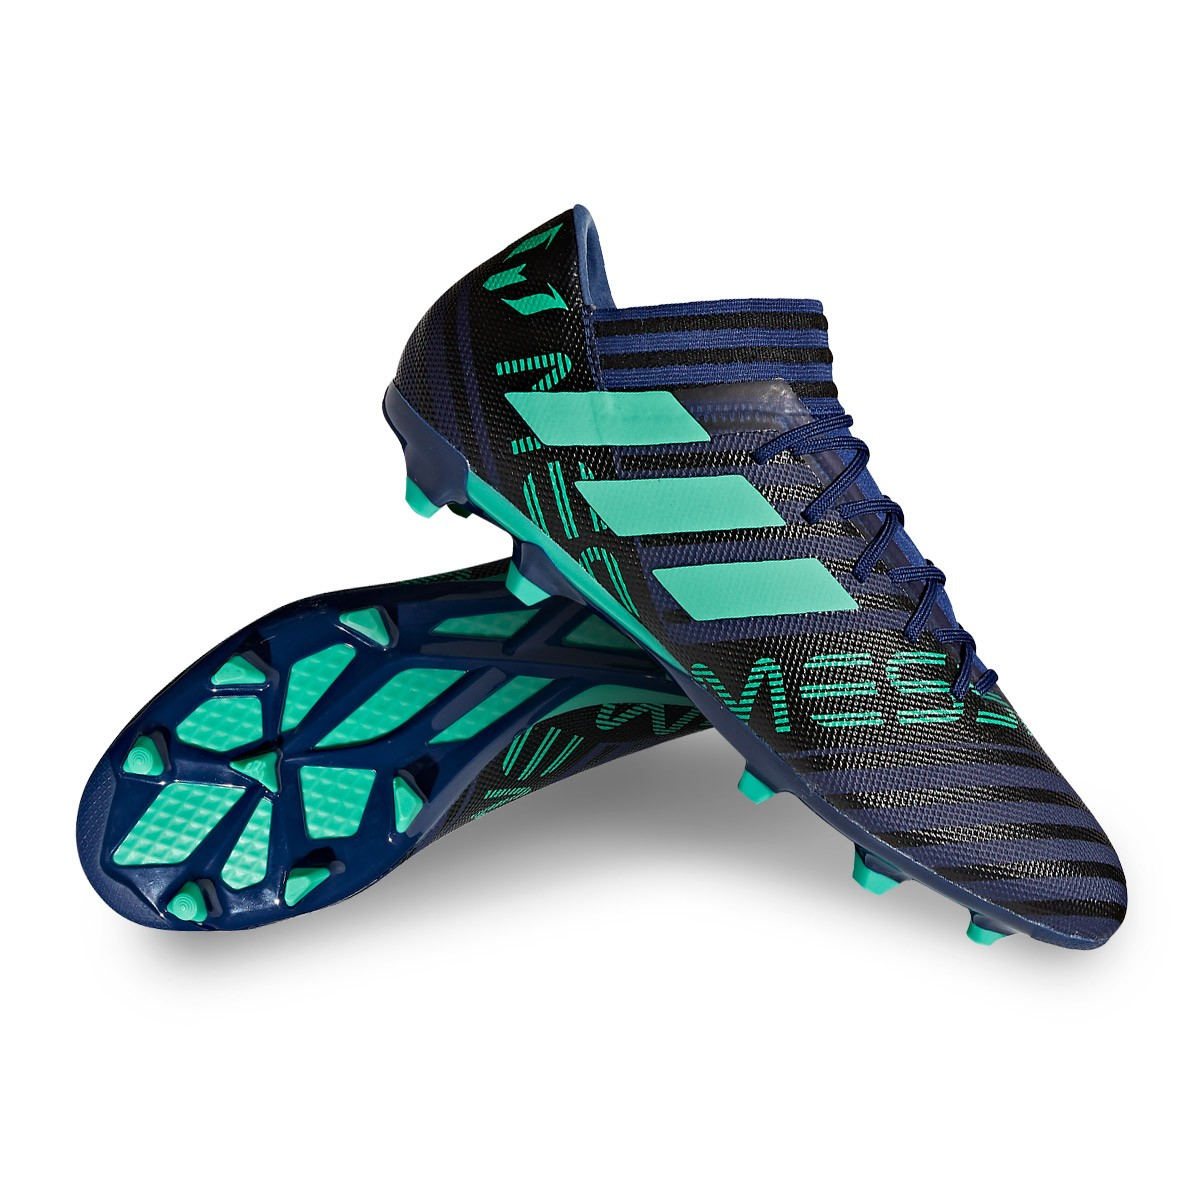 4f944c8e6167 Football Boots adidas Nemeziz Messi 17.3 FG Unity ink-Hi-res green ...